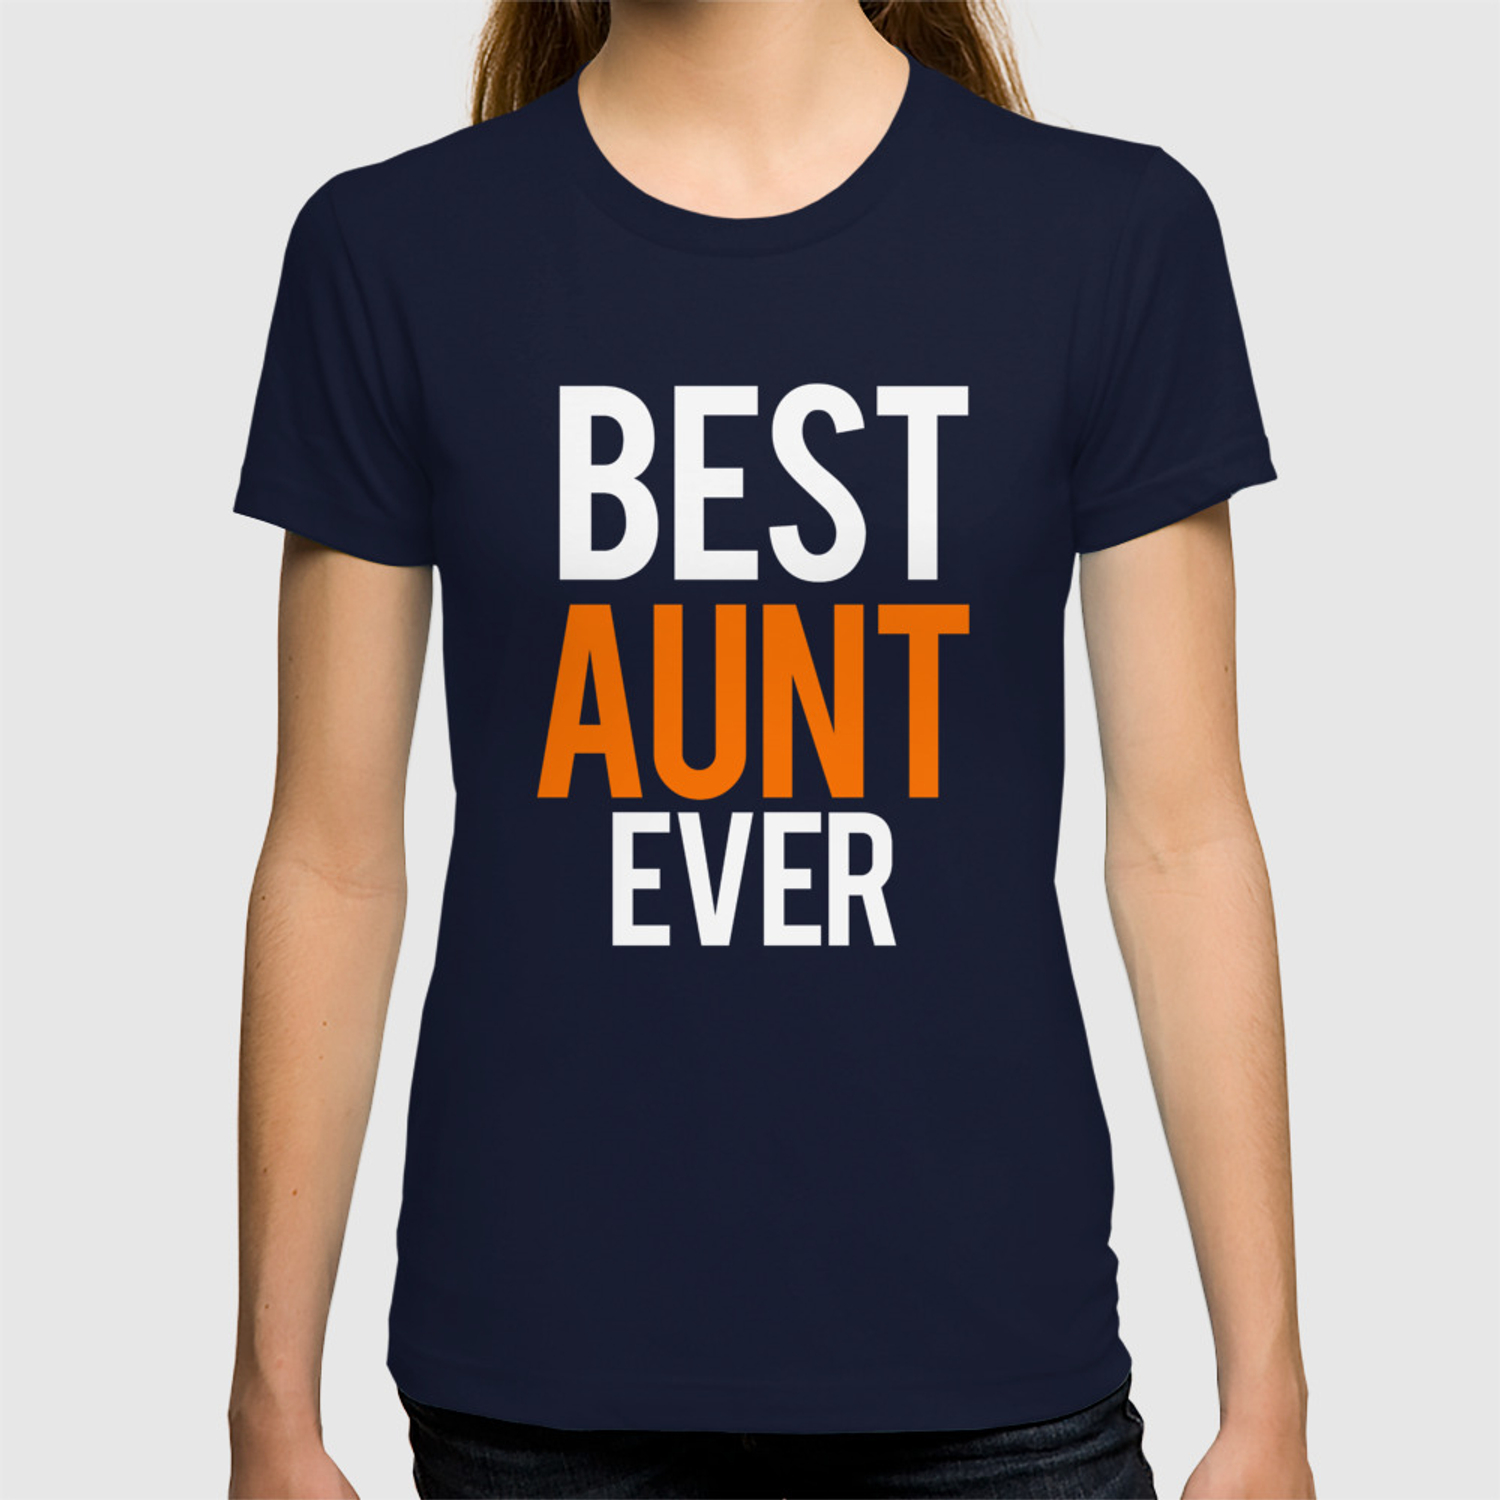 Great Aunt Gifts Best Aunt Ever Shirt T Shirt